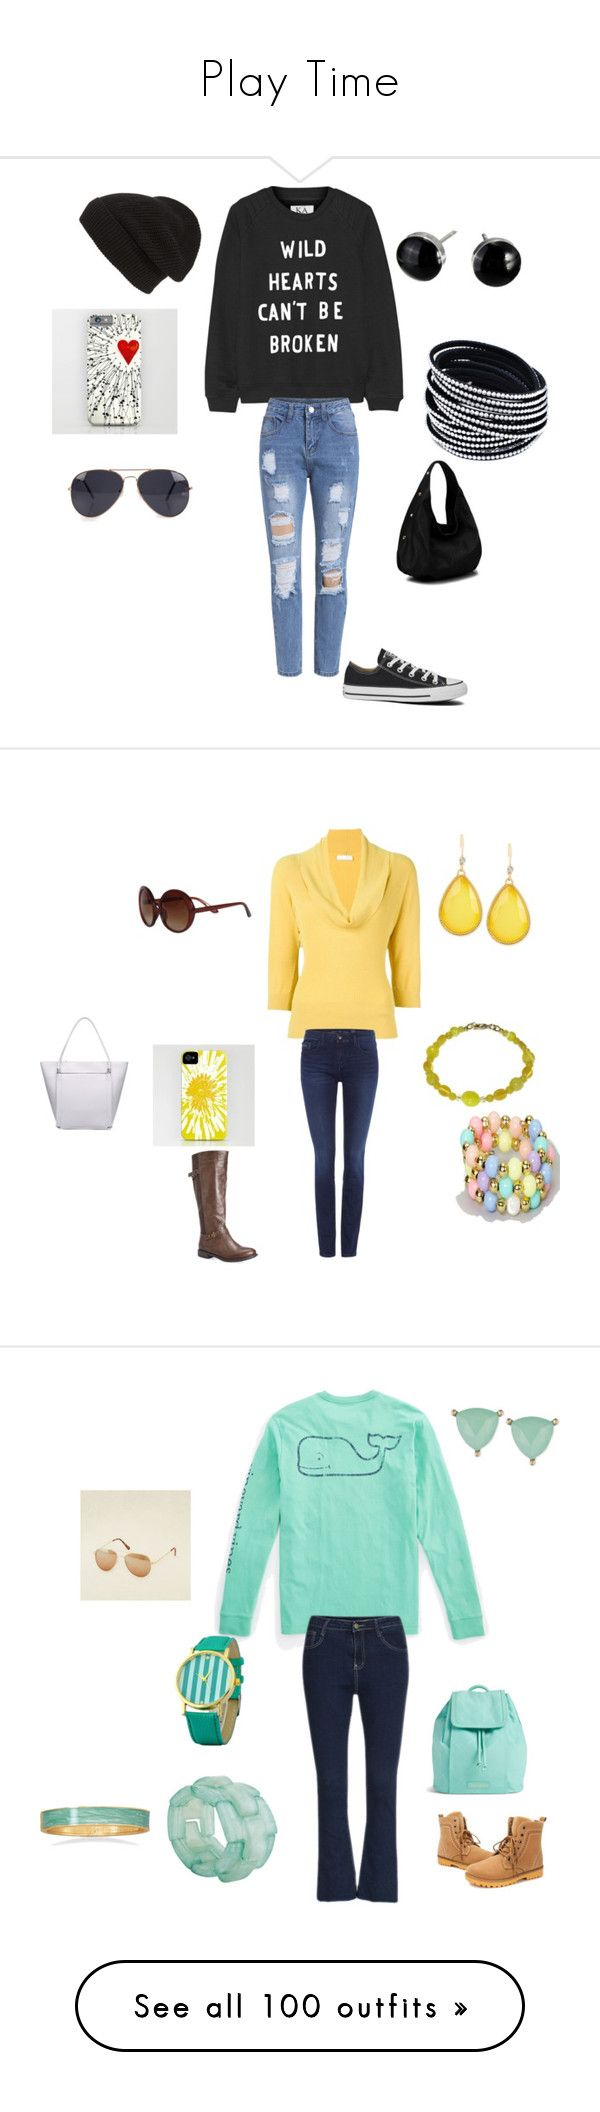 """""""Play Time"""" by hanna-debruhl on Polyvore featuring Zoe Karssen, Phase 3, NLY Accessories, Diophy, Converse, Prada, Calvin Klein, Avenue, INC International Concepts and Trio Eyewear"""